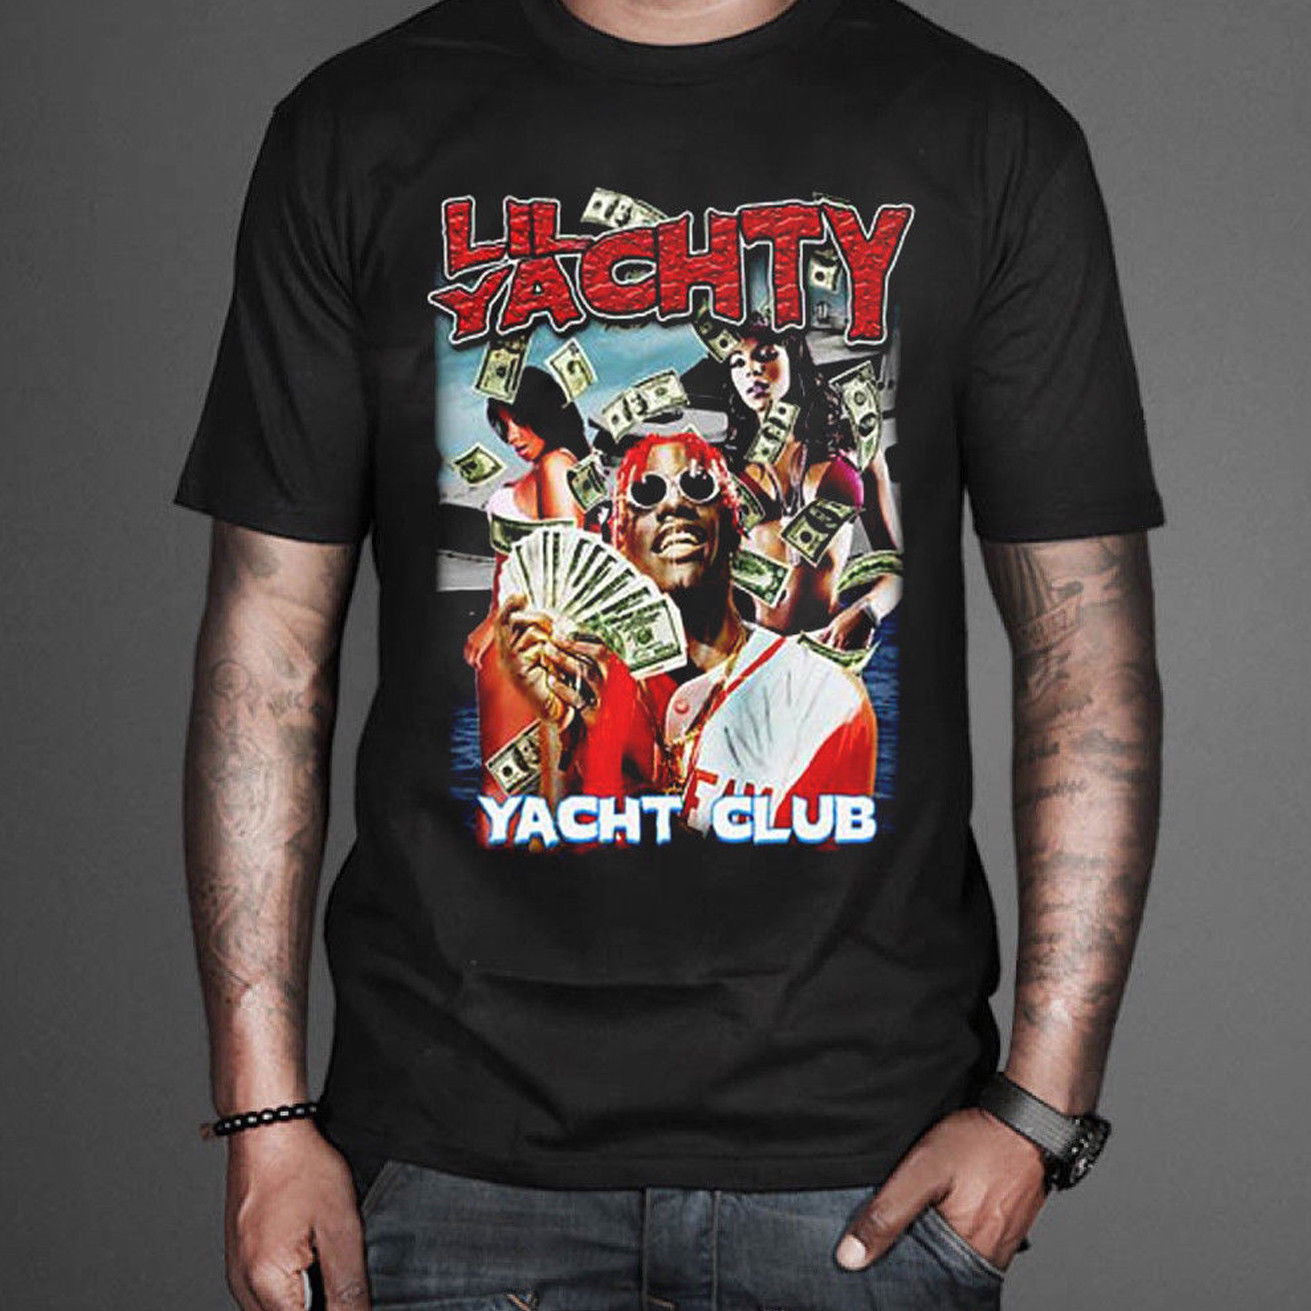 Lil Yachty Yacht Club Inspired Hip hop R & B Tee Tour 2018 Summer MenS Brand Clothing O-Neck